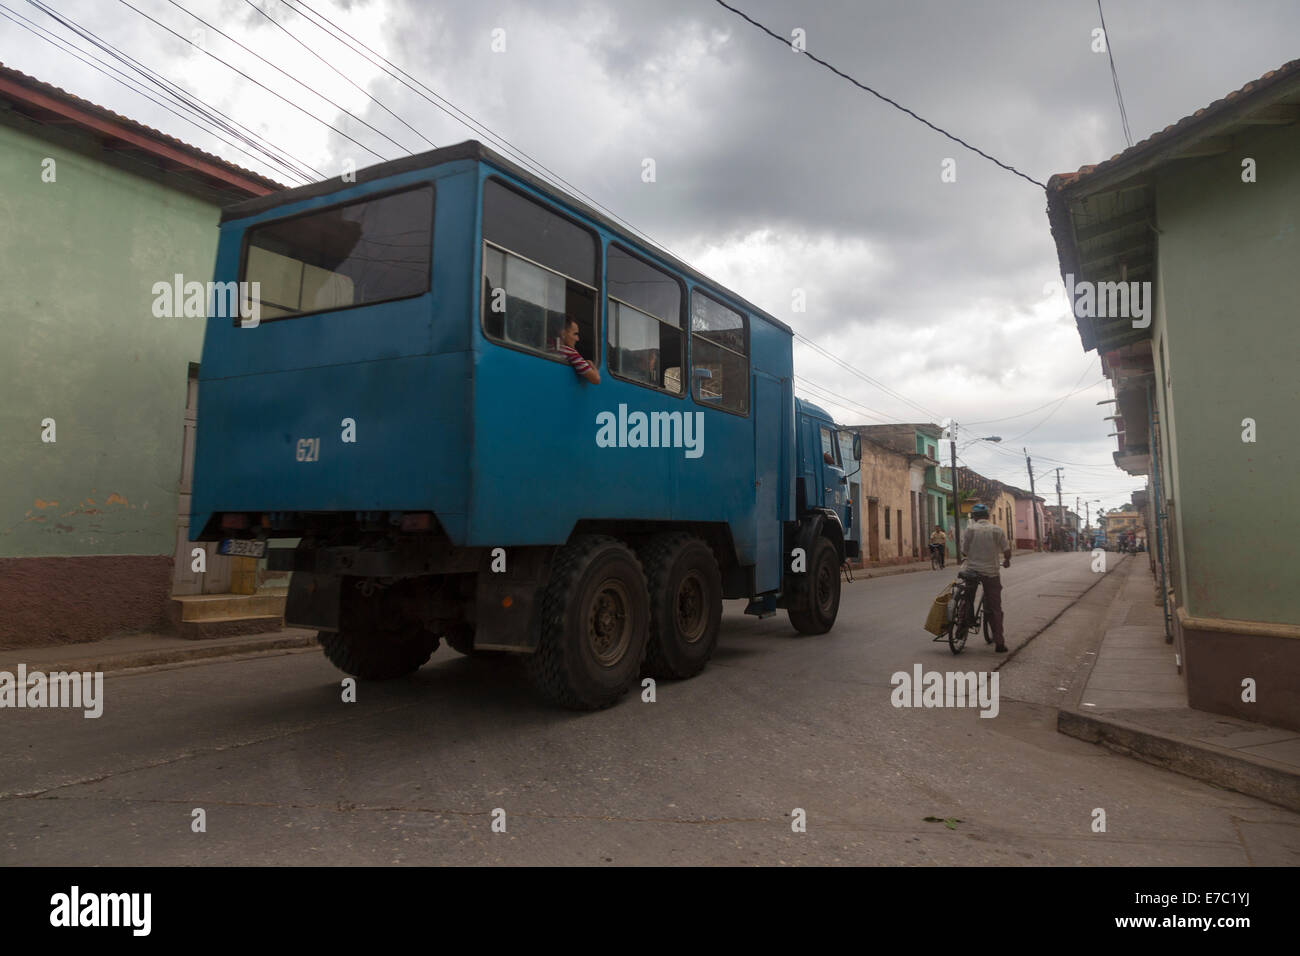 army lorry converted for public transportation, Trinidad, Cuba - Stock Image